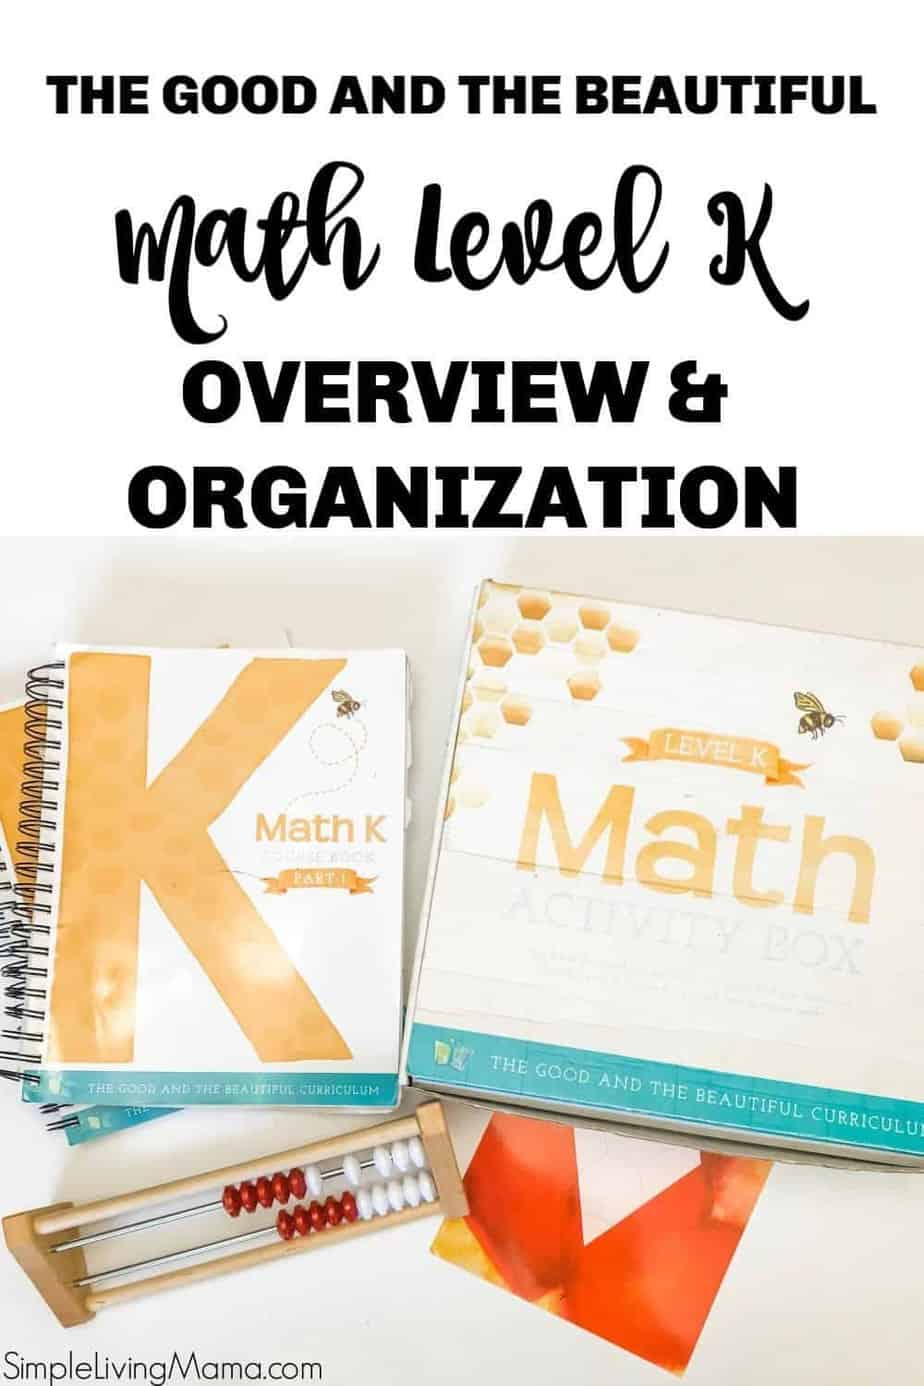 The Good and the Beautiful Level K overview and organization. Come see how we have organized Level K Math and take a peek at the curriculum!